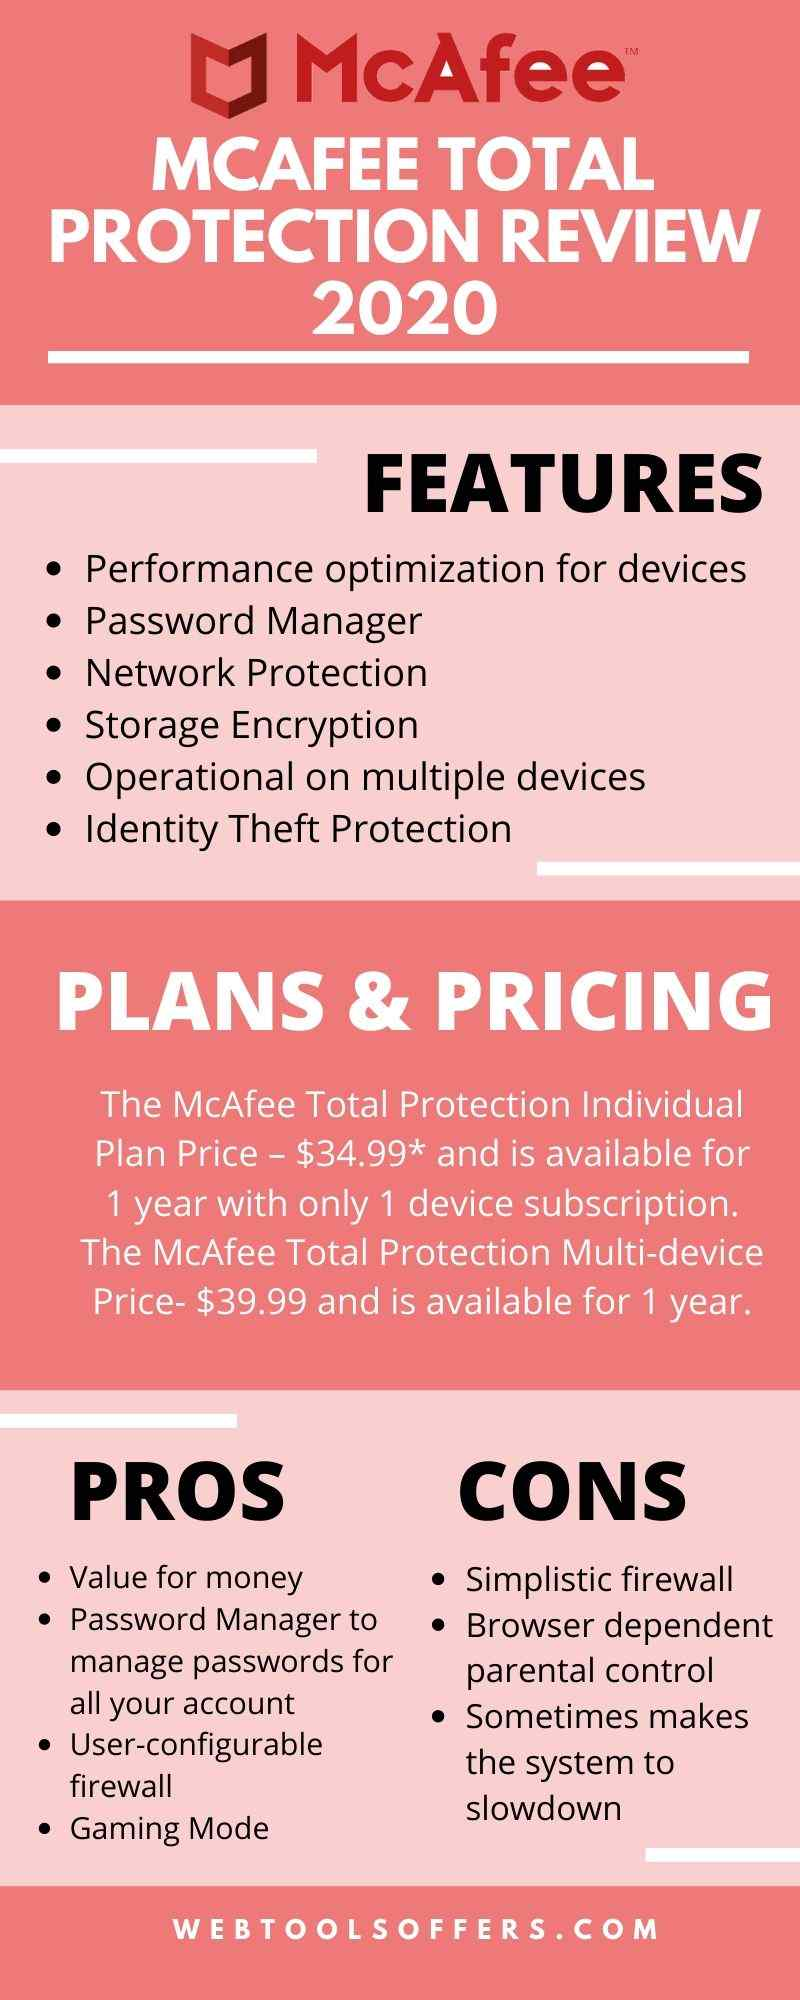 McAfee Total Protection Review 2020